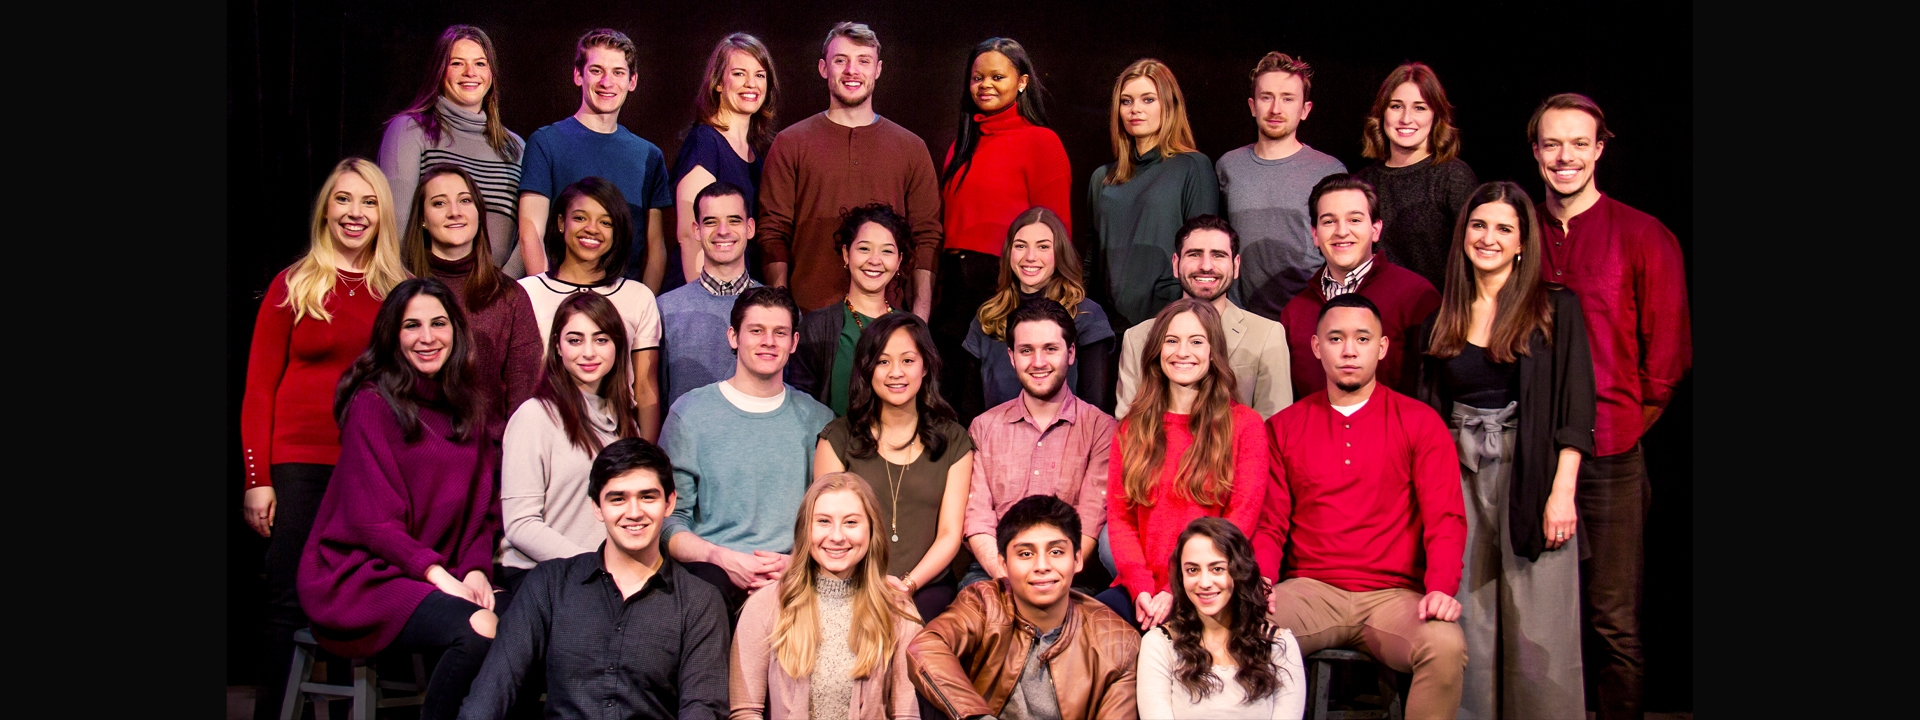 The Class of 2018 joins a 90 year legacy of excellence in actor training.